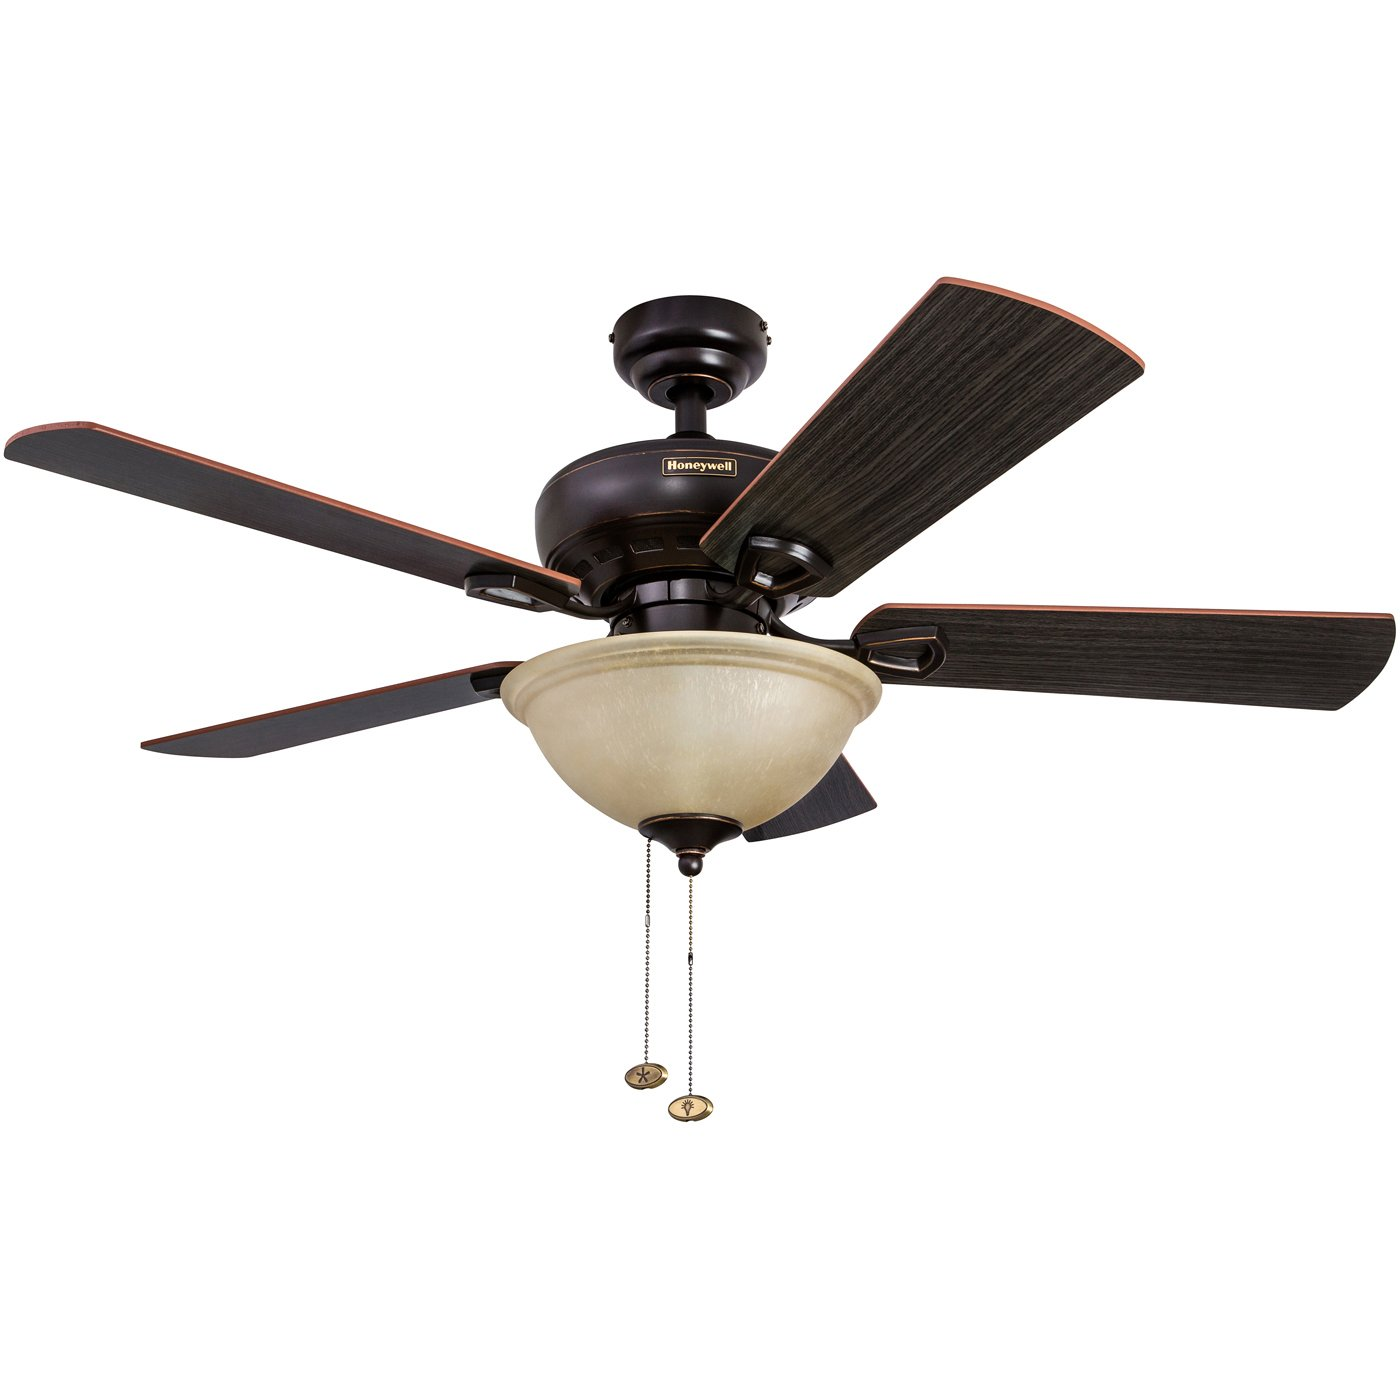 Honeywell Woodcrest 44-Inch Ceiling Fan with Sunset Bowl Light, Five Reversible Cimarron/Ironwood Blades, Oil-Rubbed Bronze